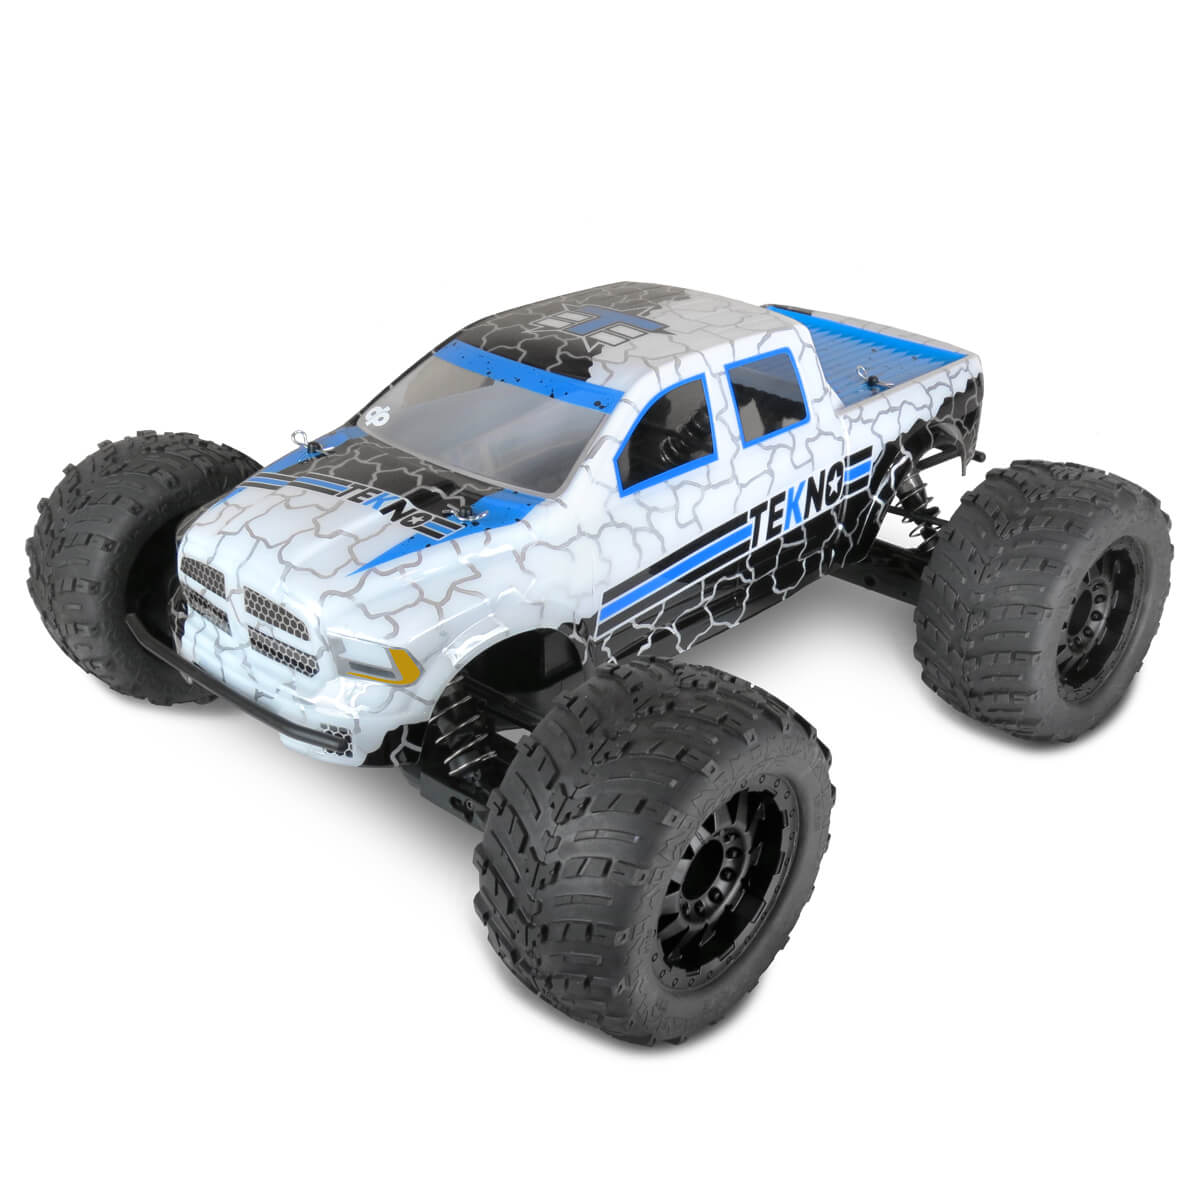 Tekno RC MT410 1/10th Electric 4×4 Pro Monster Truck Kit